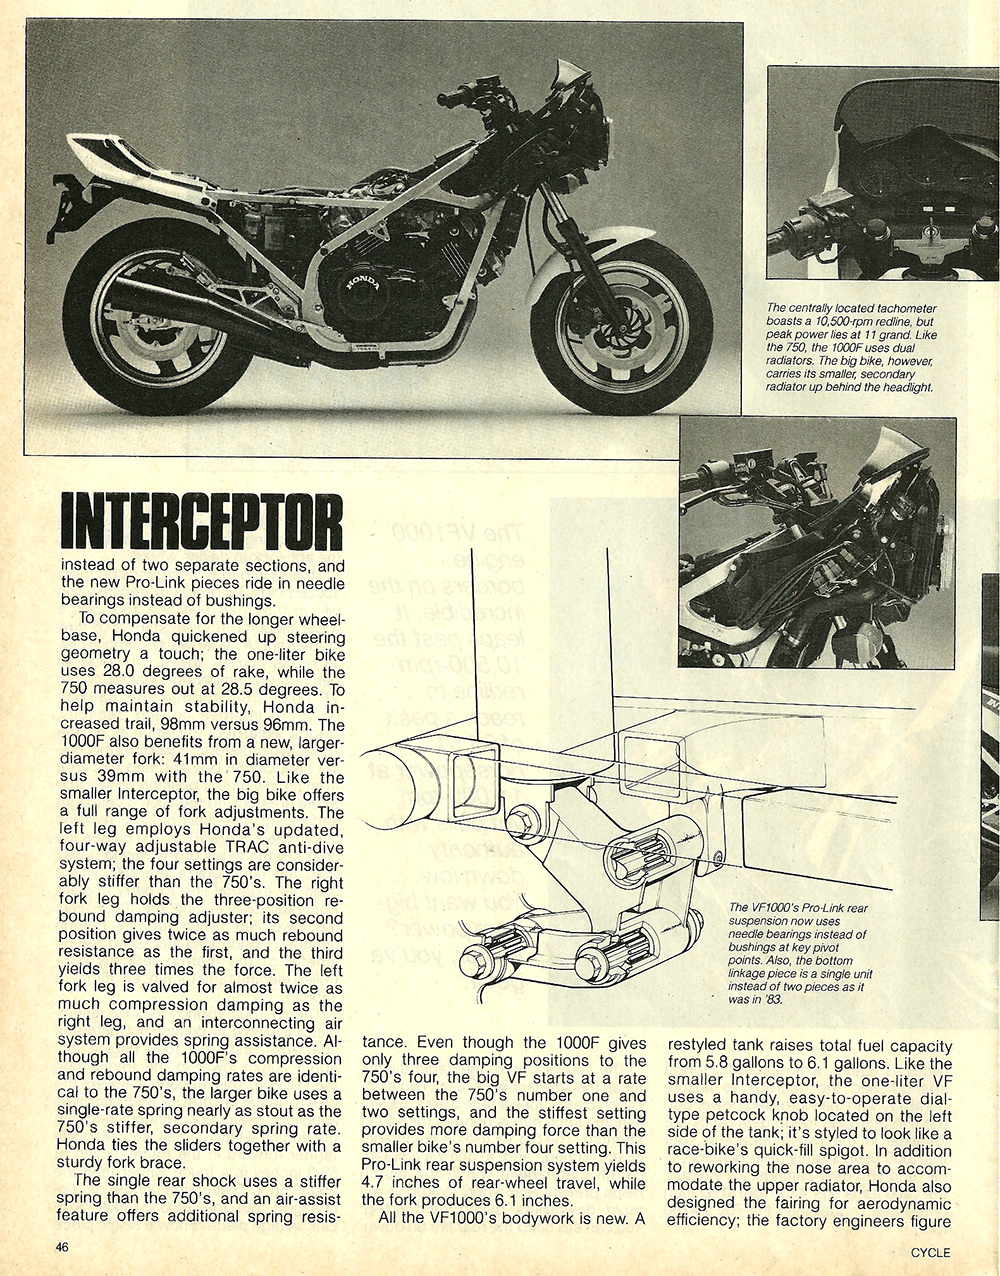 1984 Honda VF1000 Interceptor road test 5.jpg